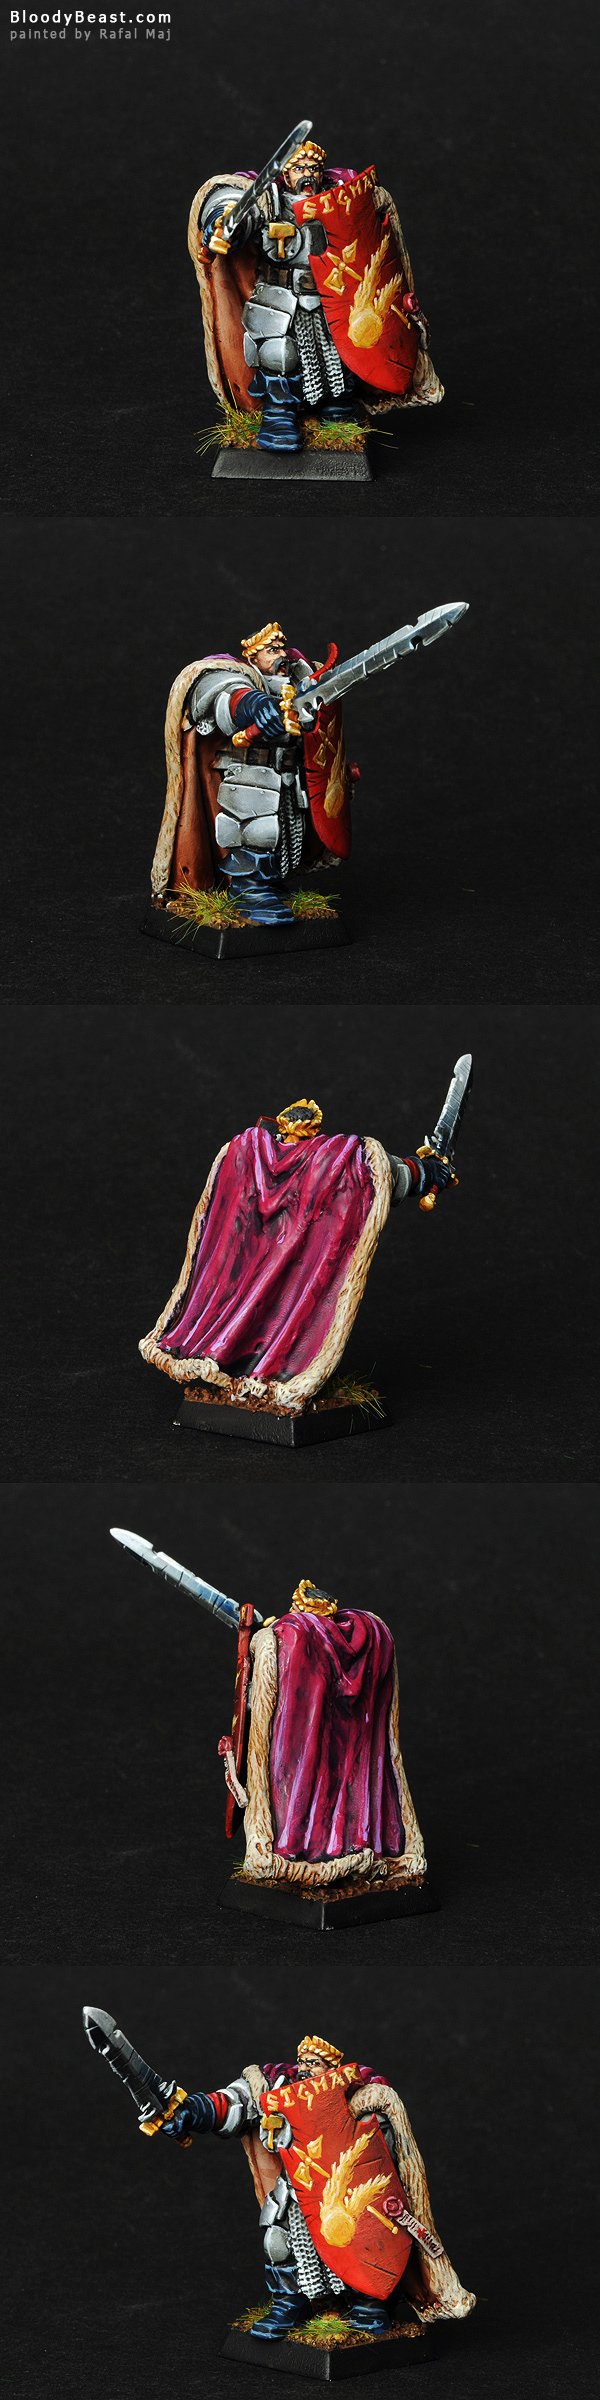 Empire Elector Count painted by Rafal Maj (BloodyBeast.com)